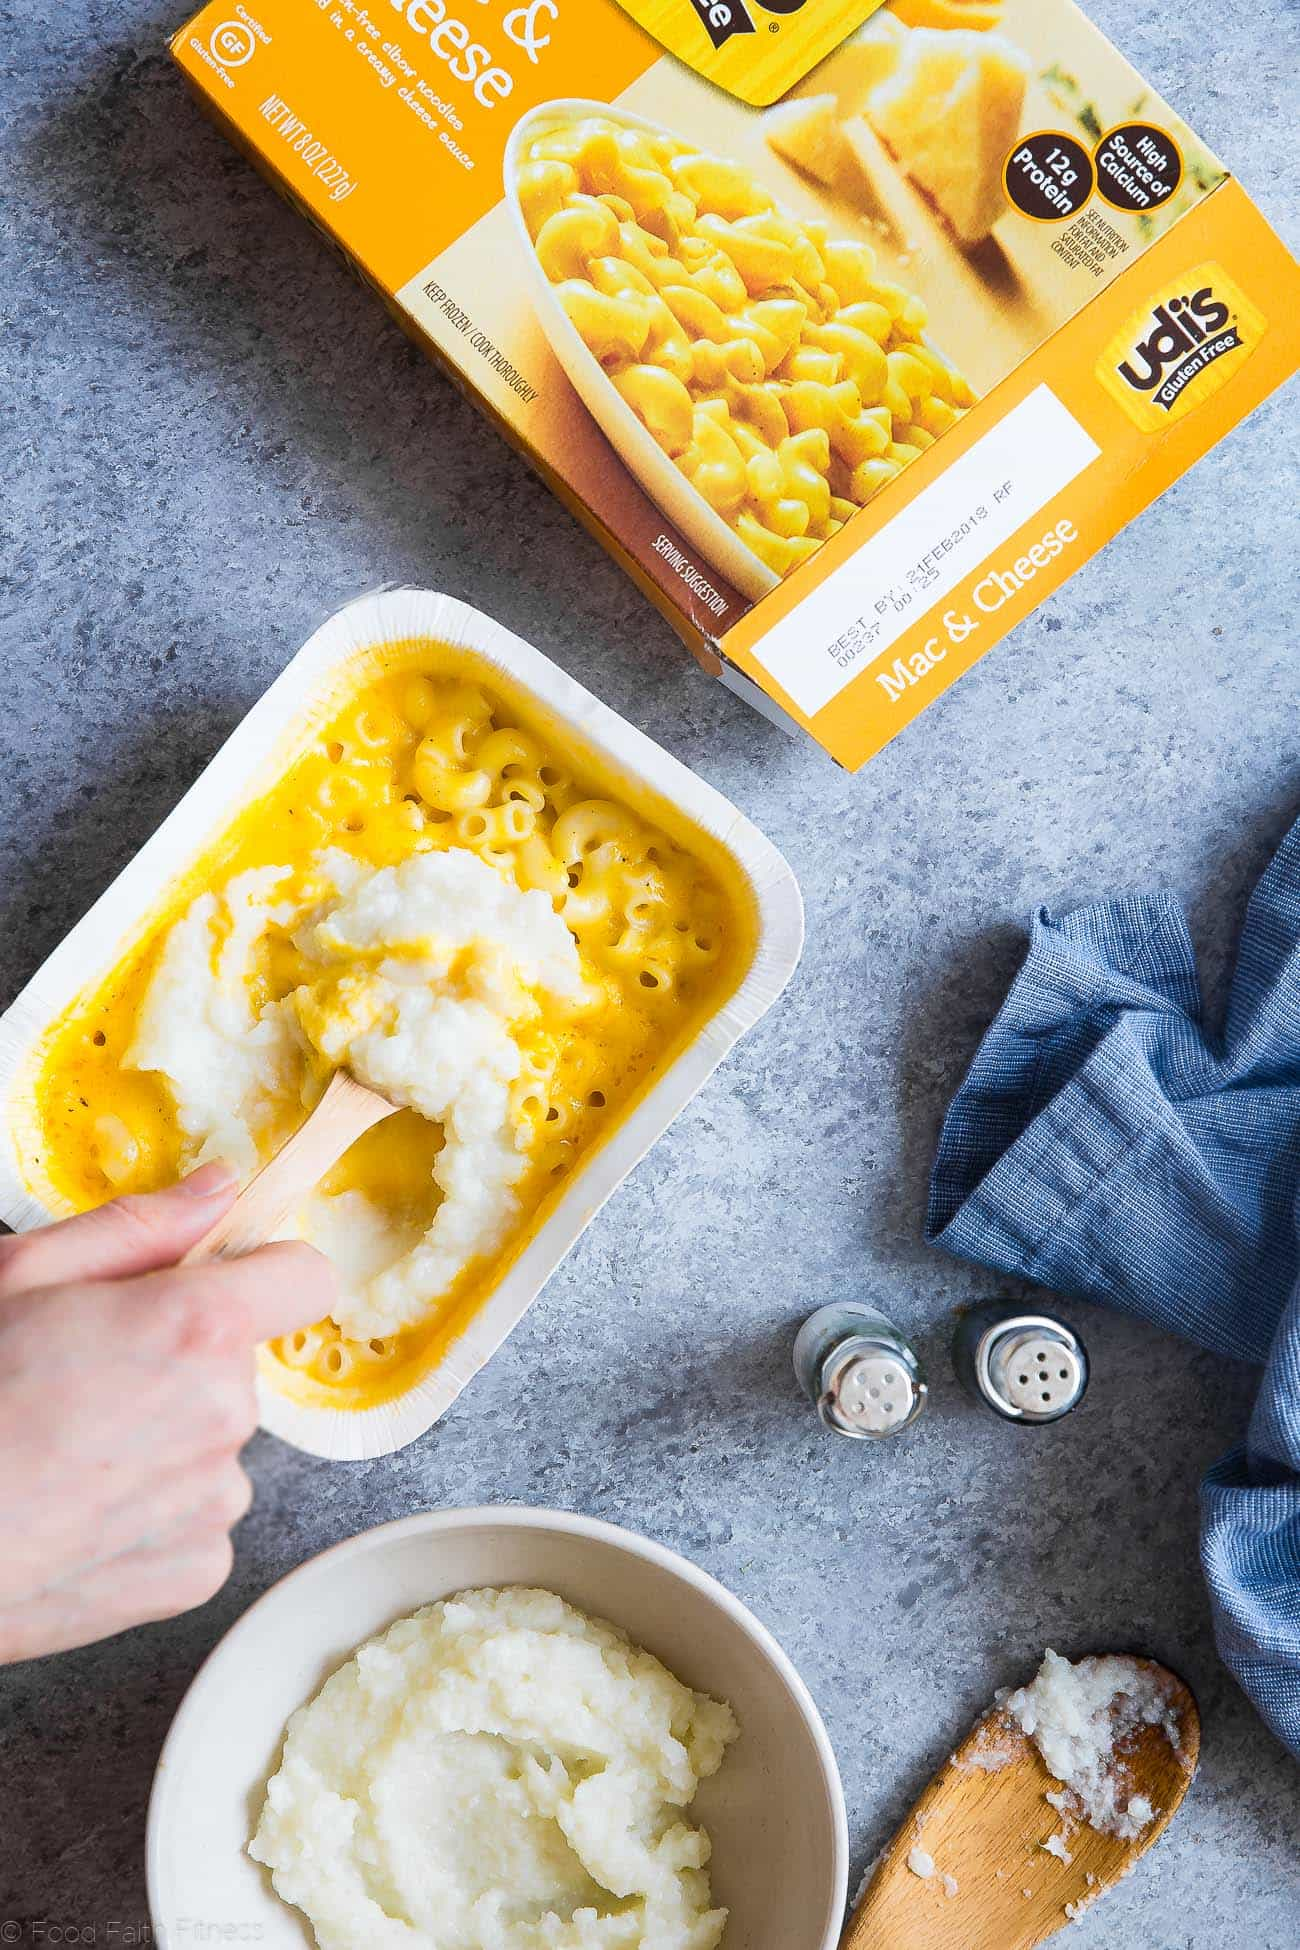 Hidden Veggie Healthy Mac and Cheese Meal Prep Bowls - Aneasy, gluten free, make-ahead lunch to get your family to eat veggies without complaining! Only 300 calories and perfect for school lunches! | Foodfaithfitness.com | @FoodFaithFit